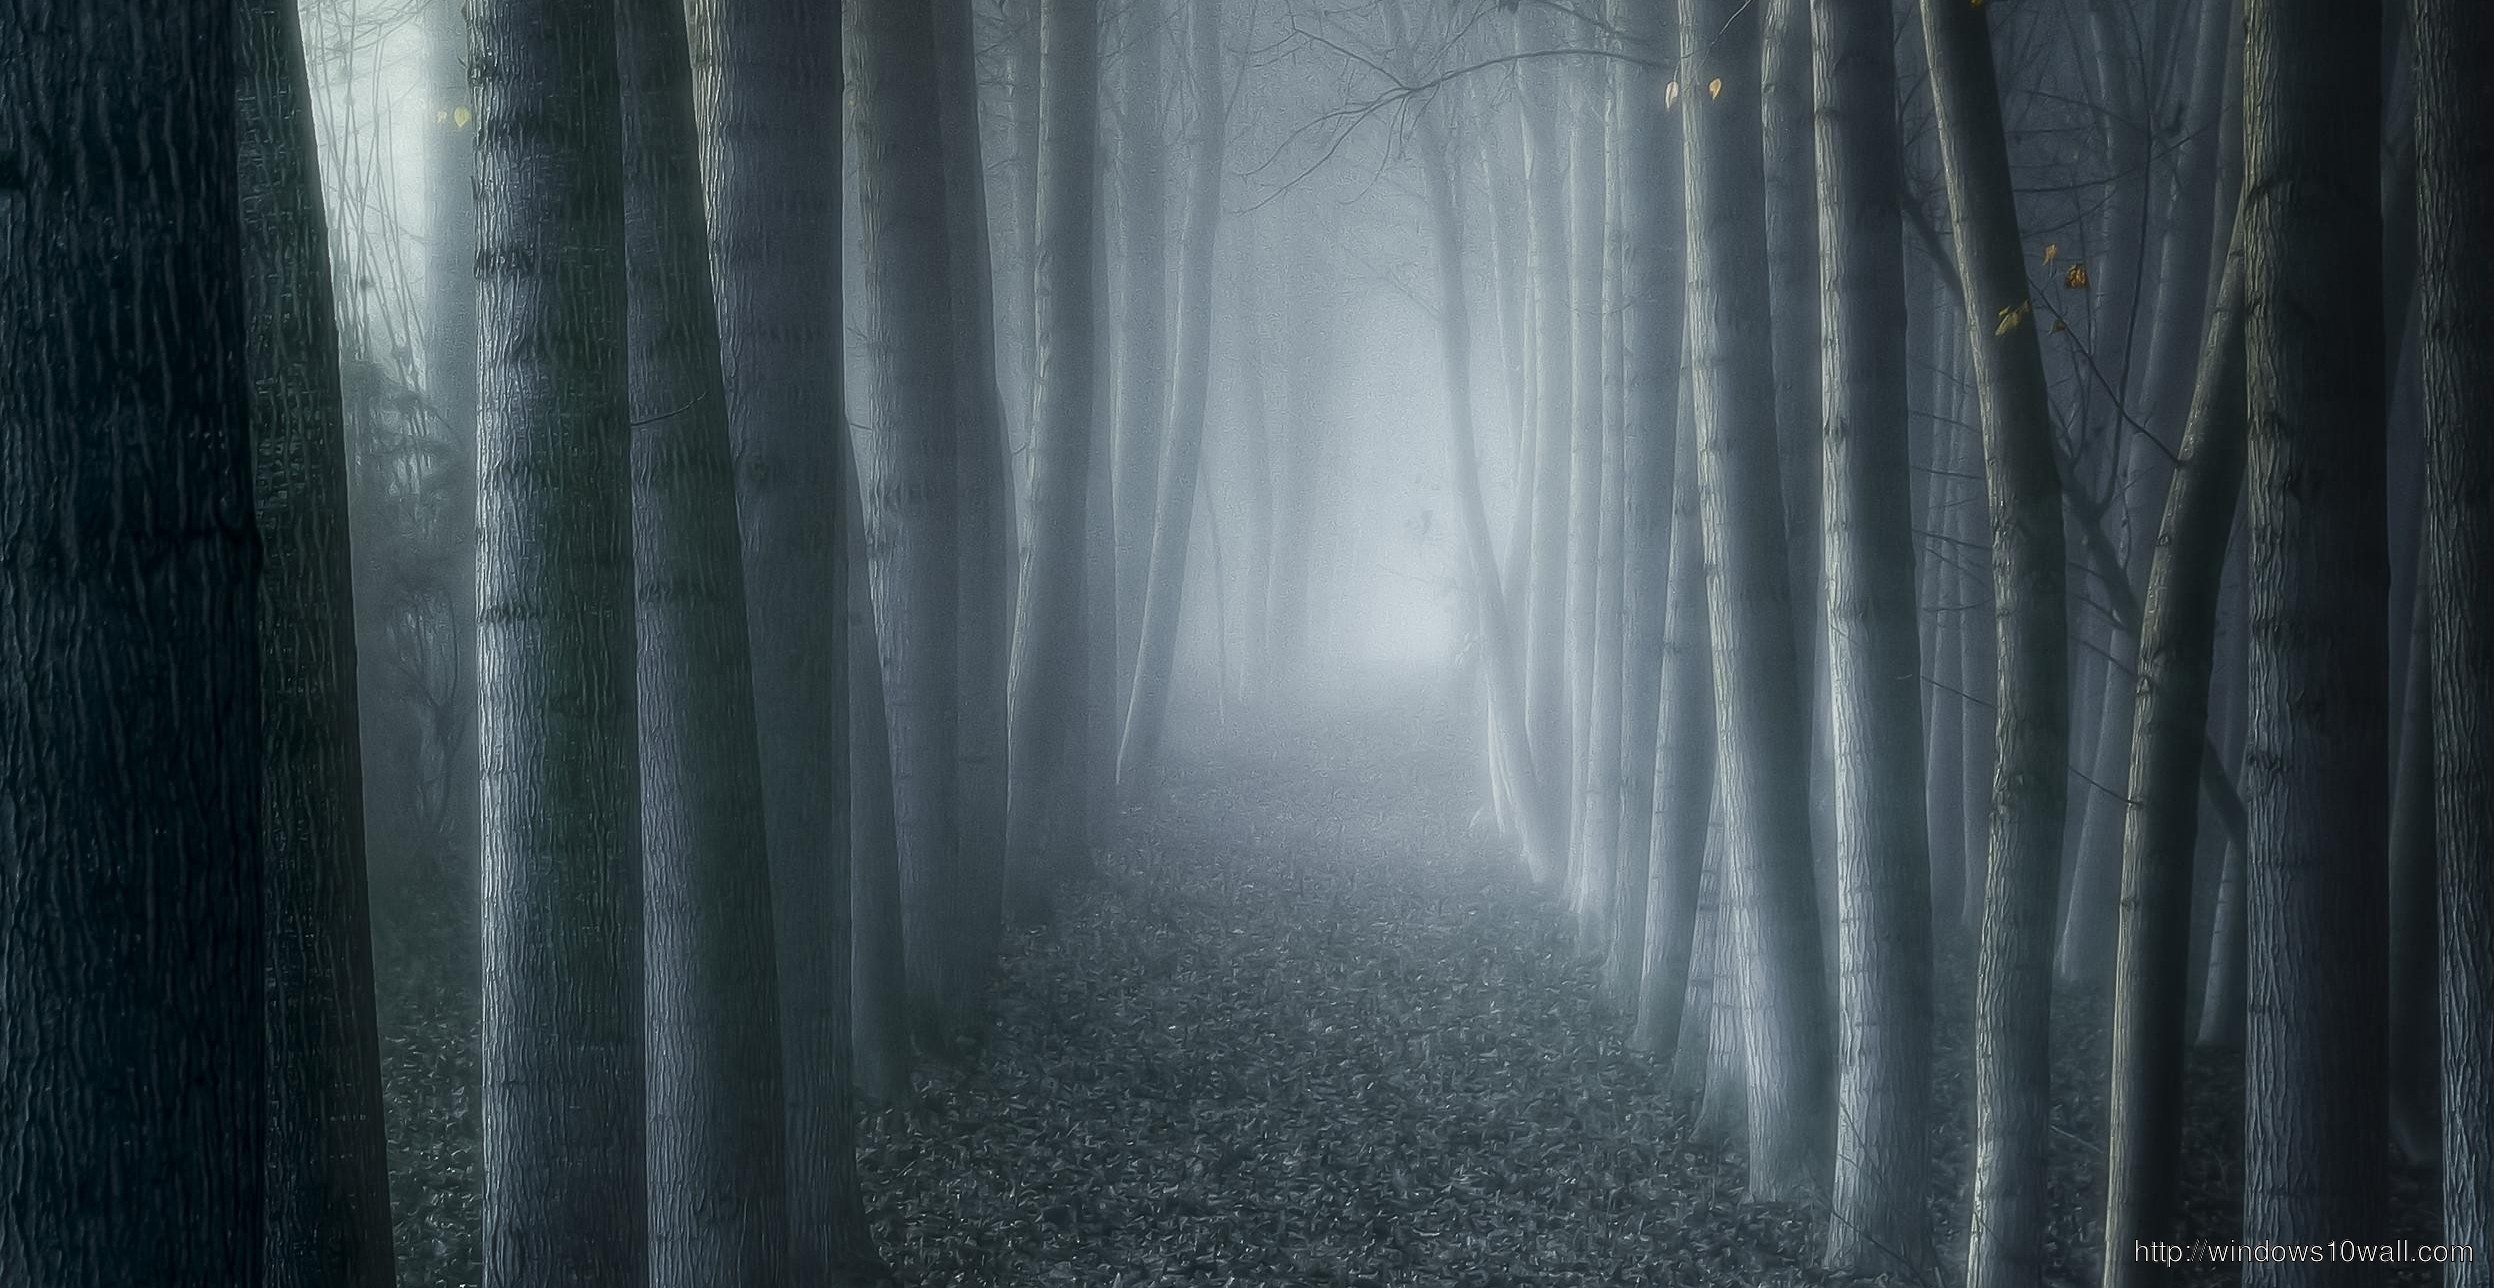 Dark Trees Hd Wallpapers: Landscapes Nature Trees Dark Forests Fog Hd Wallpaper